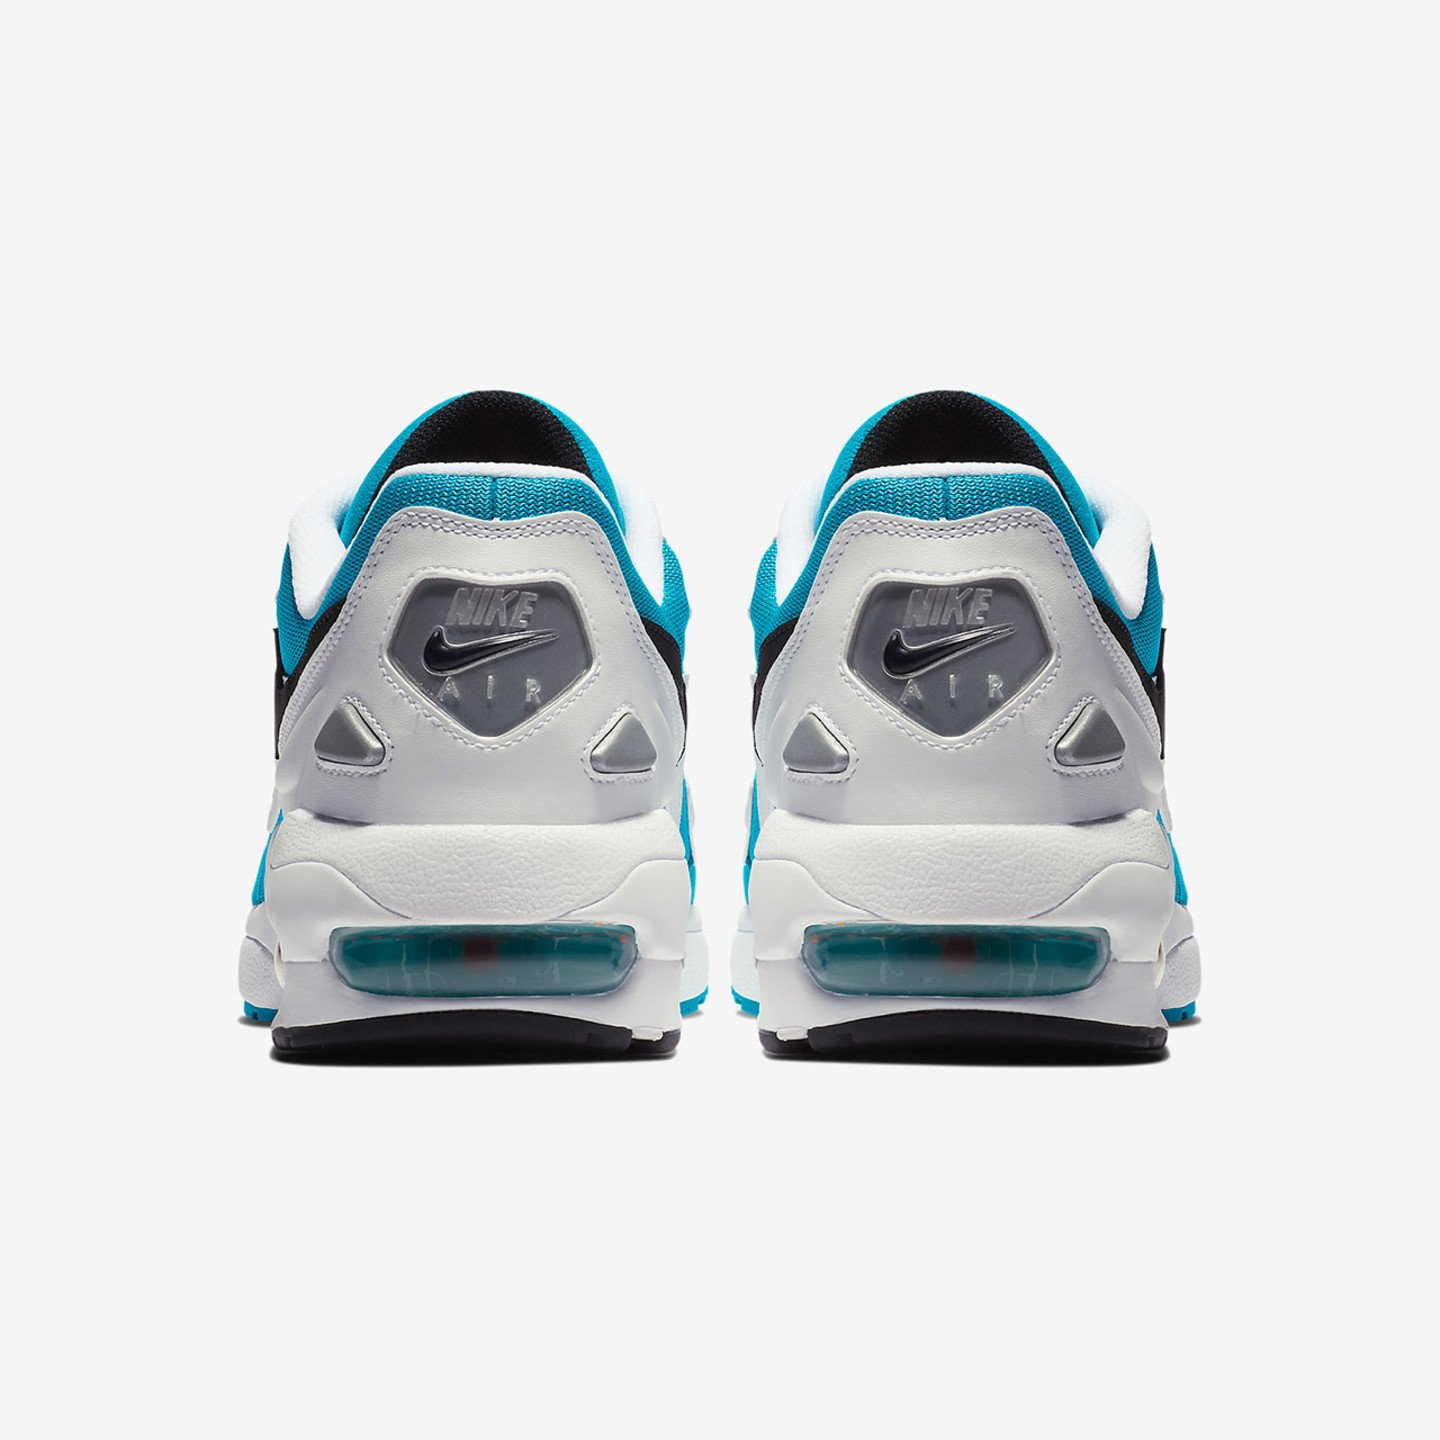 Nike Air Max 2 Light White / Black / Blue Lagoon / Laser Orange AO1741-100